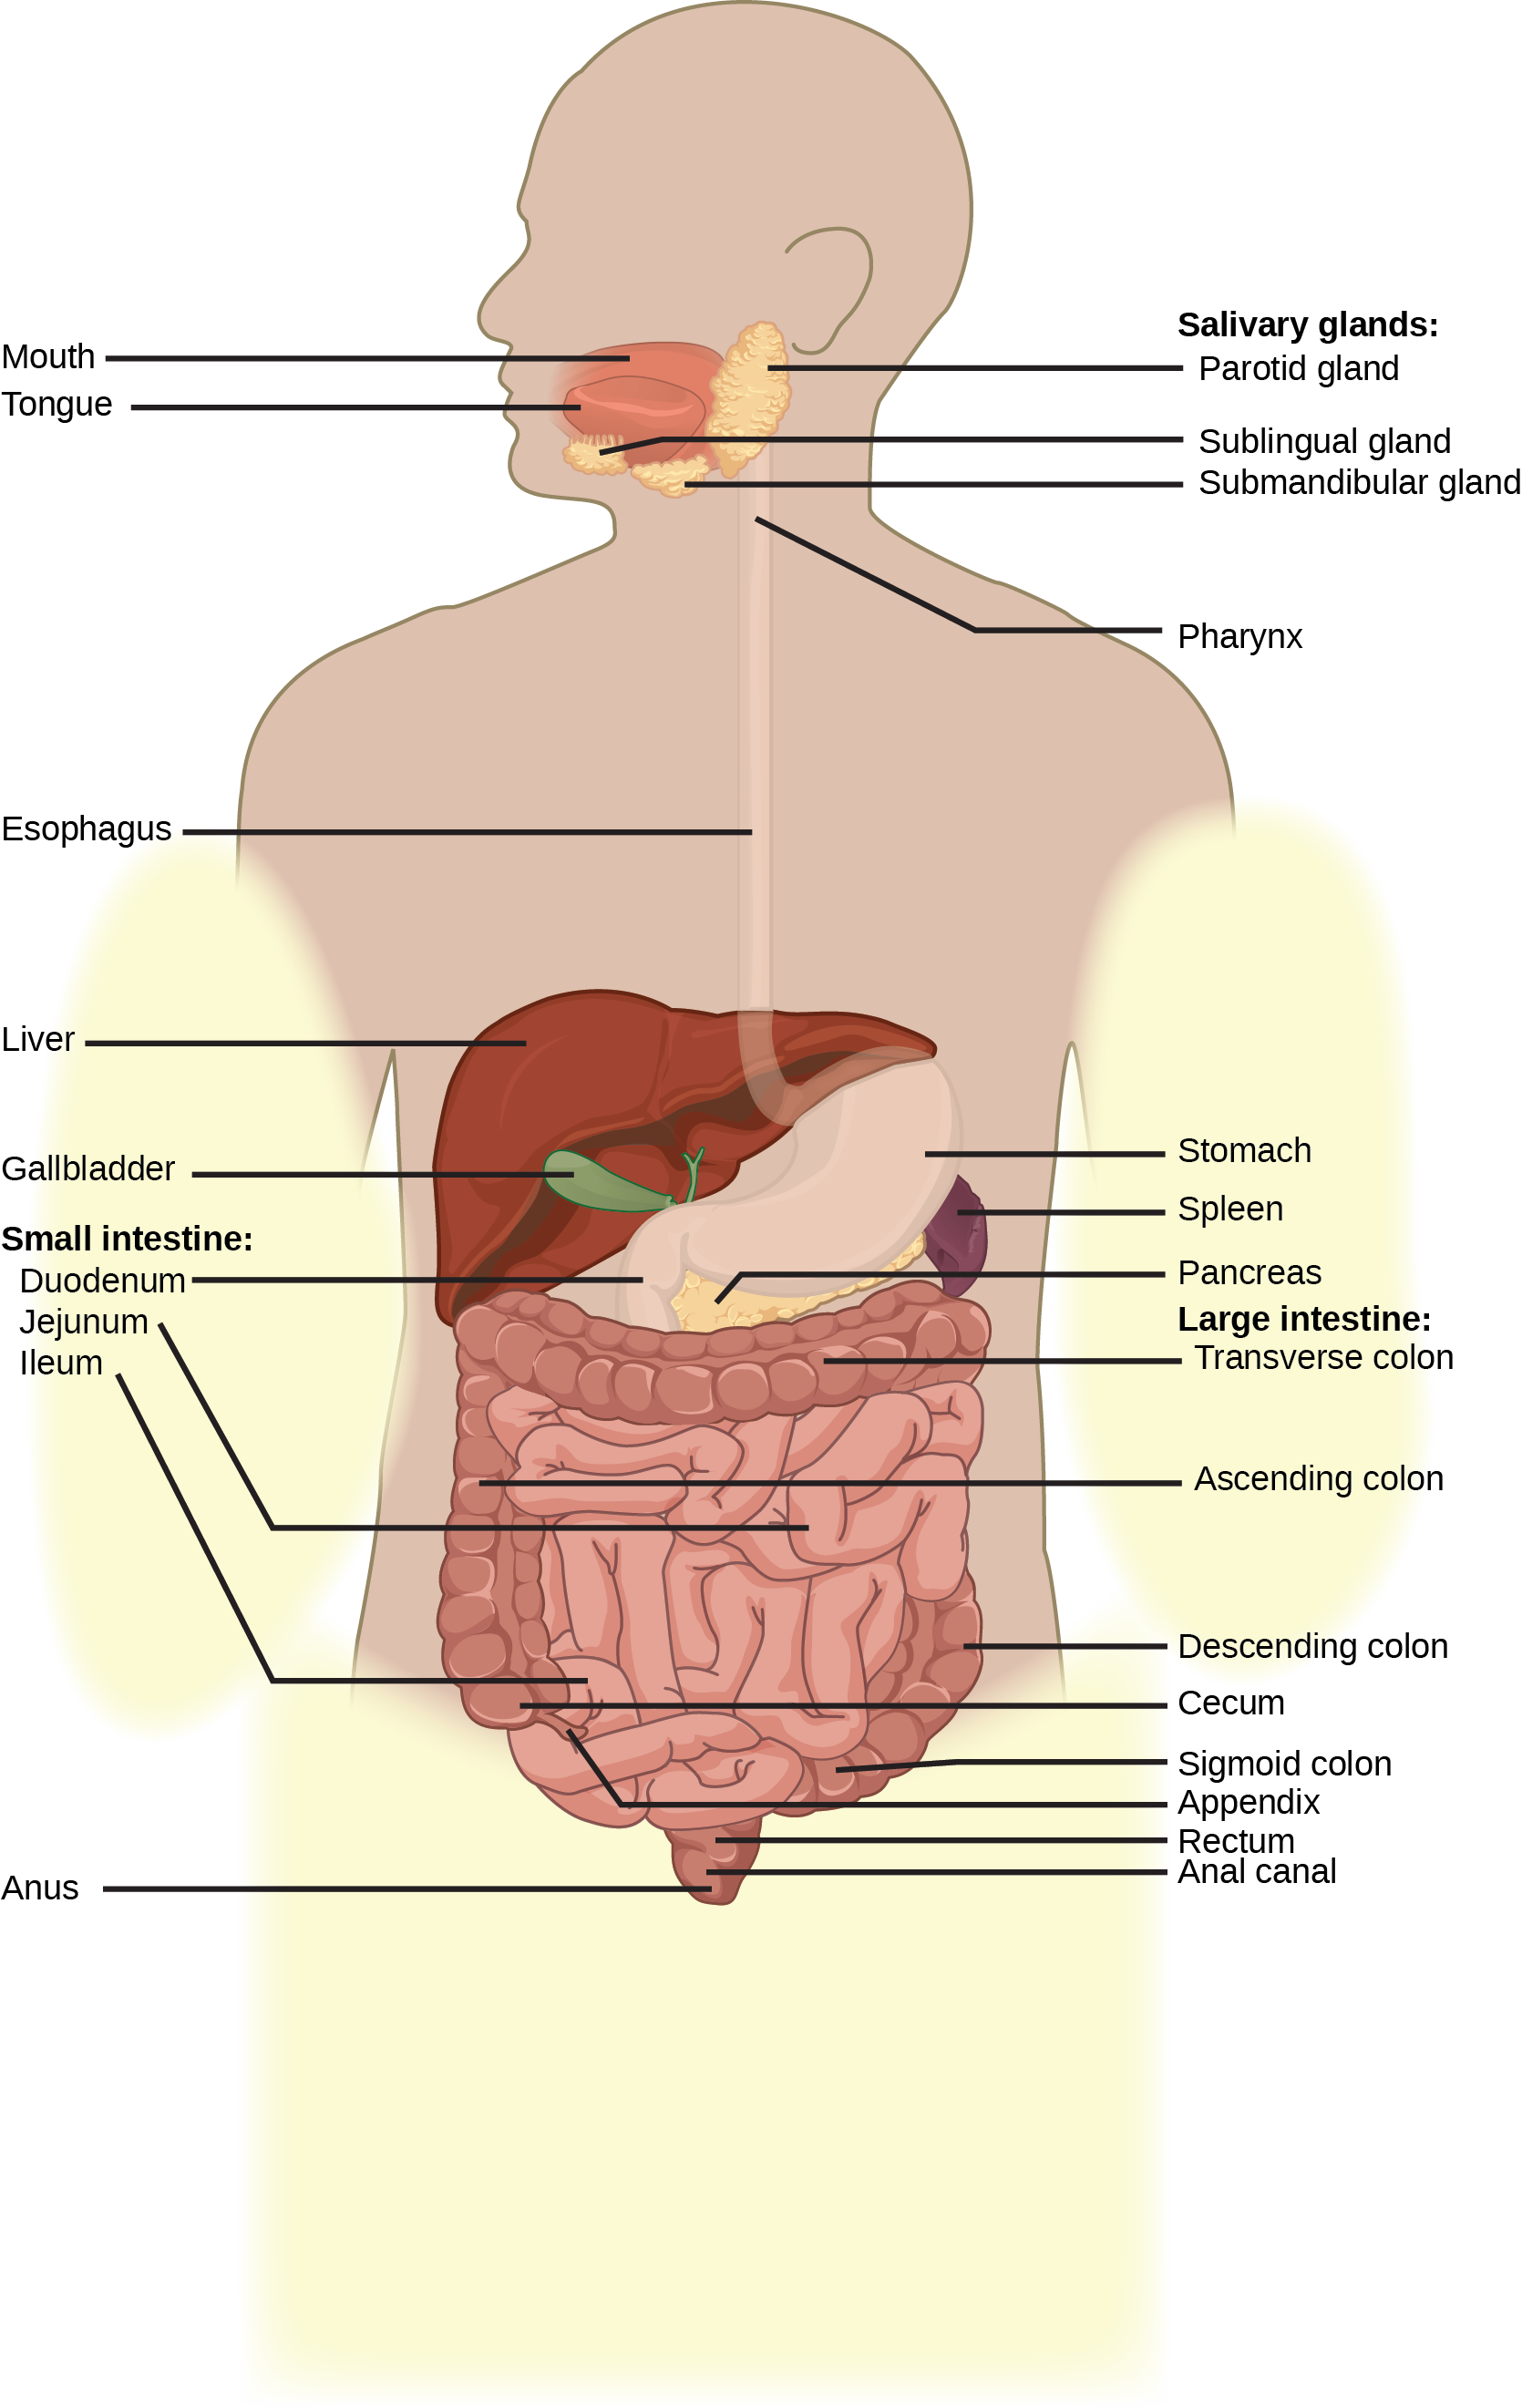 Digestive Systems Openstax Biology 2e The Muscles Organs Diagram Of A Sea Anemone Look From Inside Illustration Shows Human Lower System Which Begins With Stomach Sac